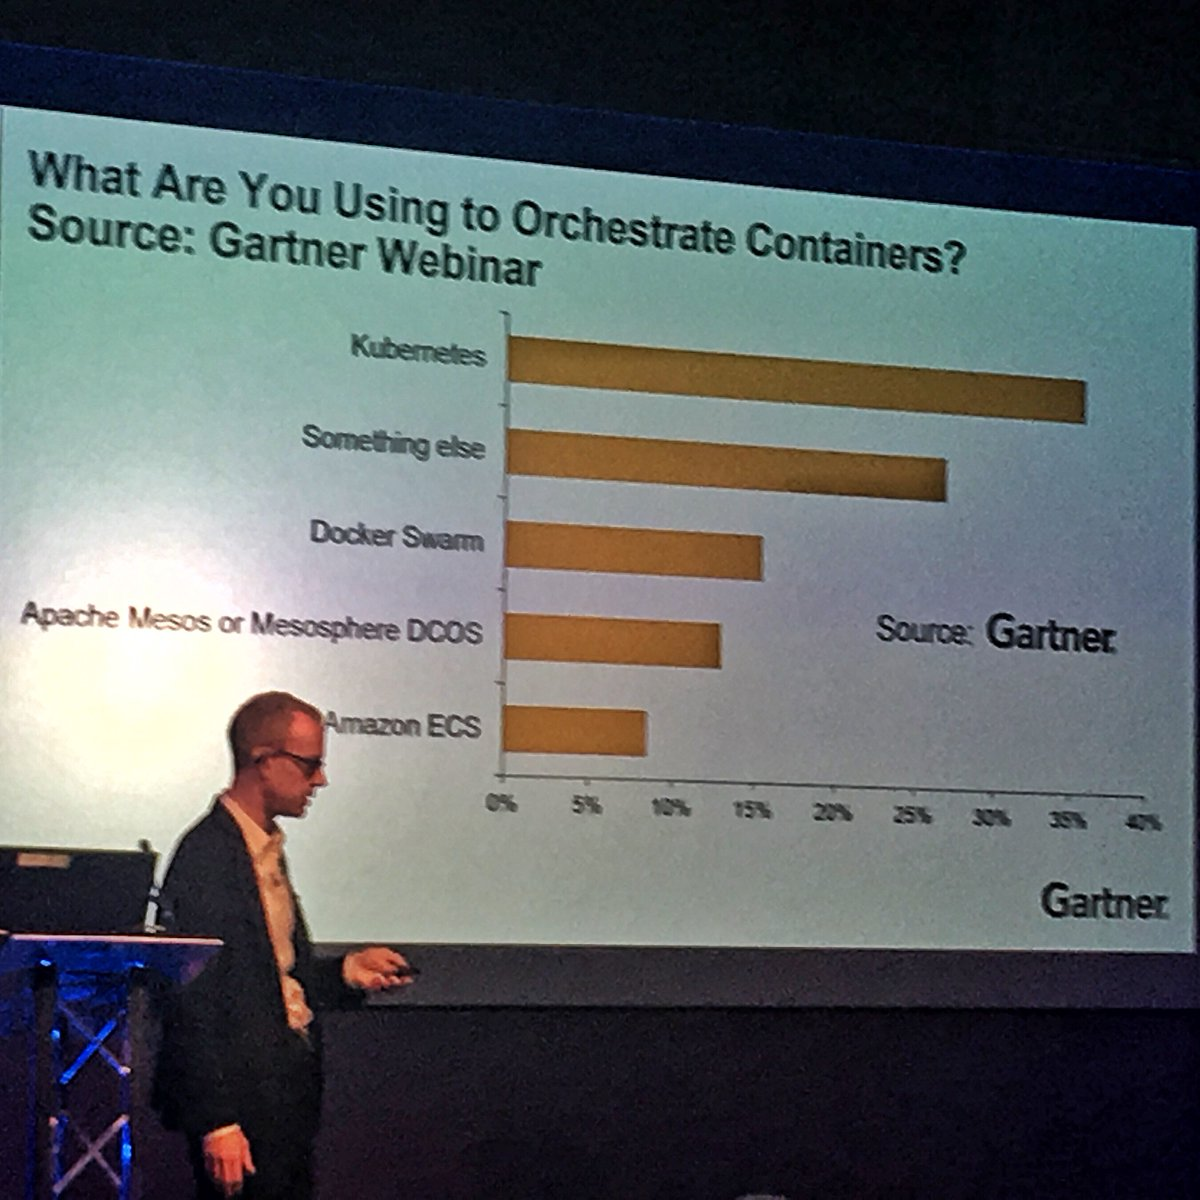 After many vendor-sponsored surveys Gartner runs its own to find out what tools orgs use for containers #GartnerCAT https://t.co/uwIMqHqfX2